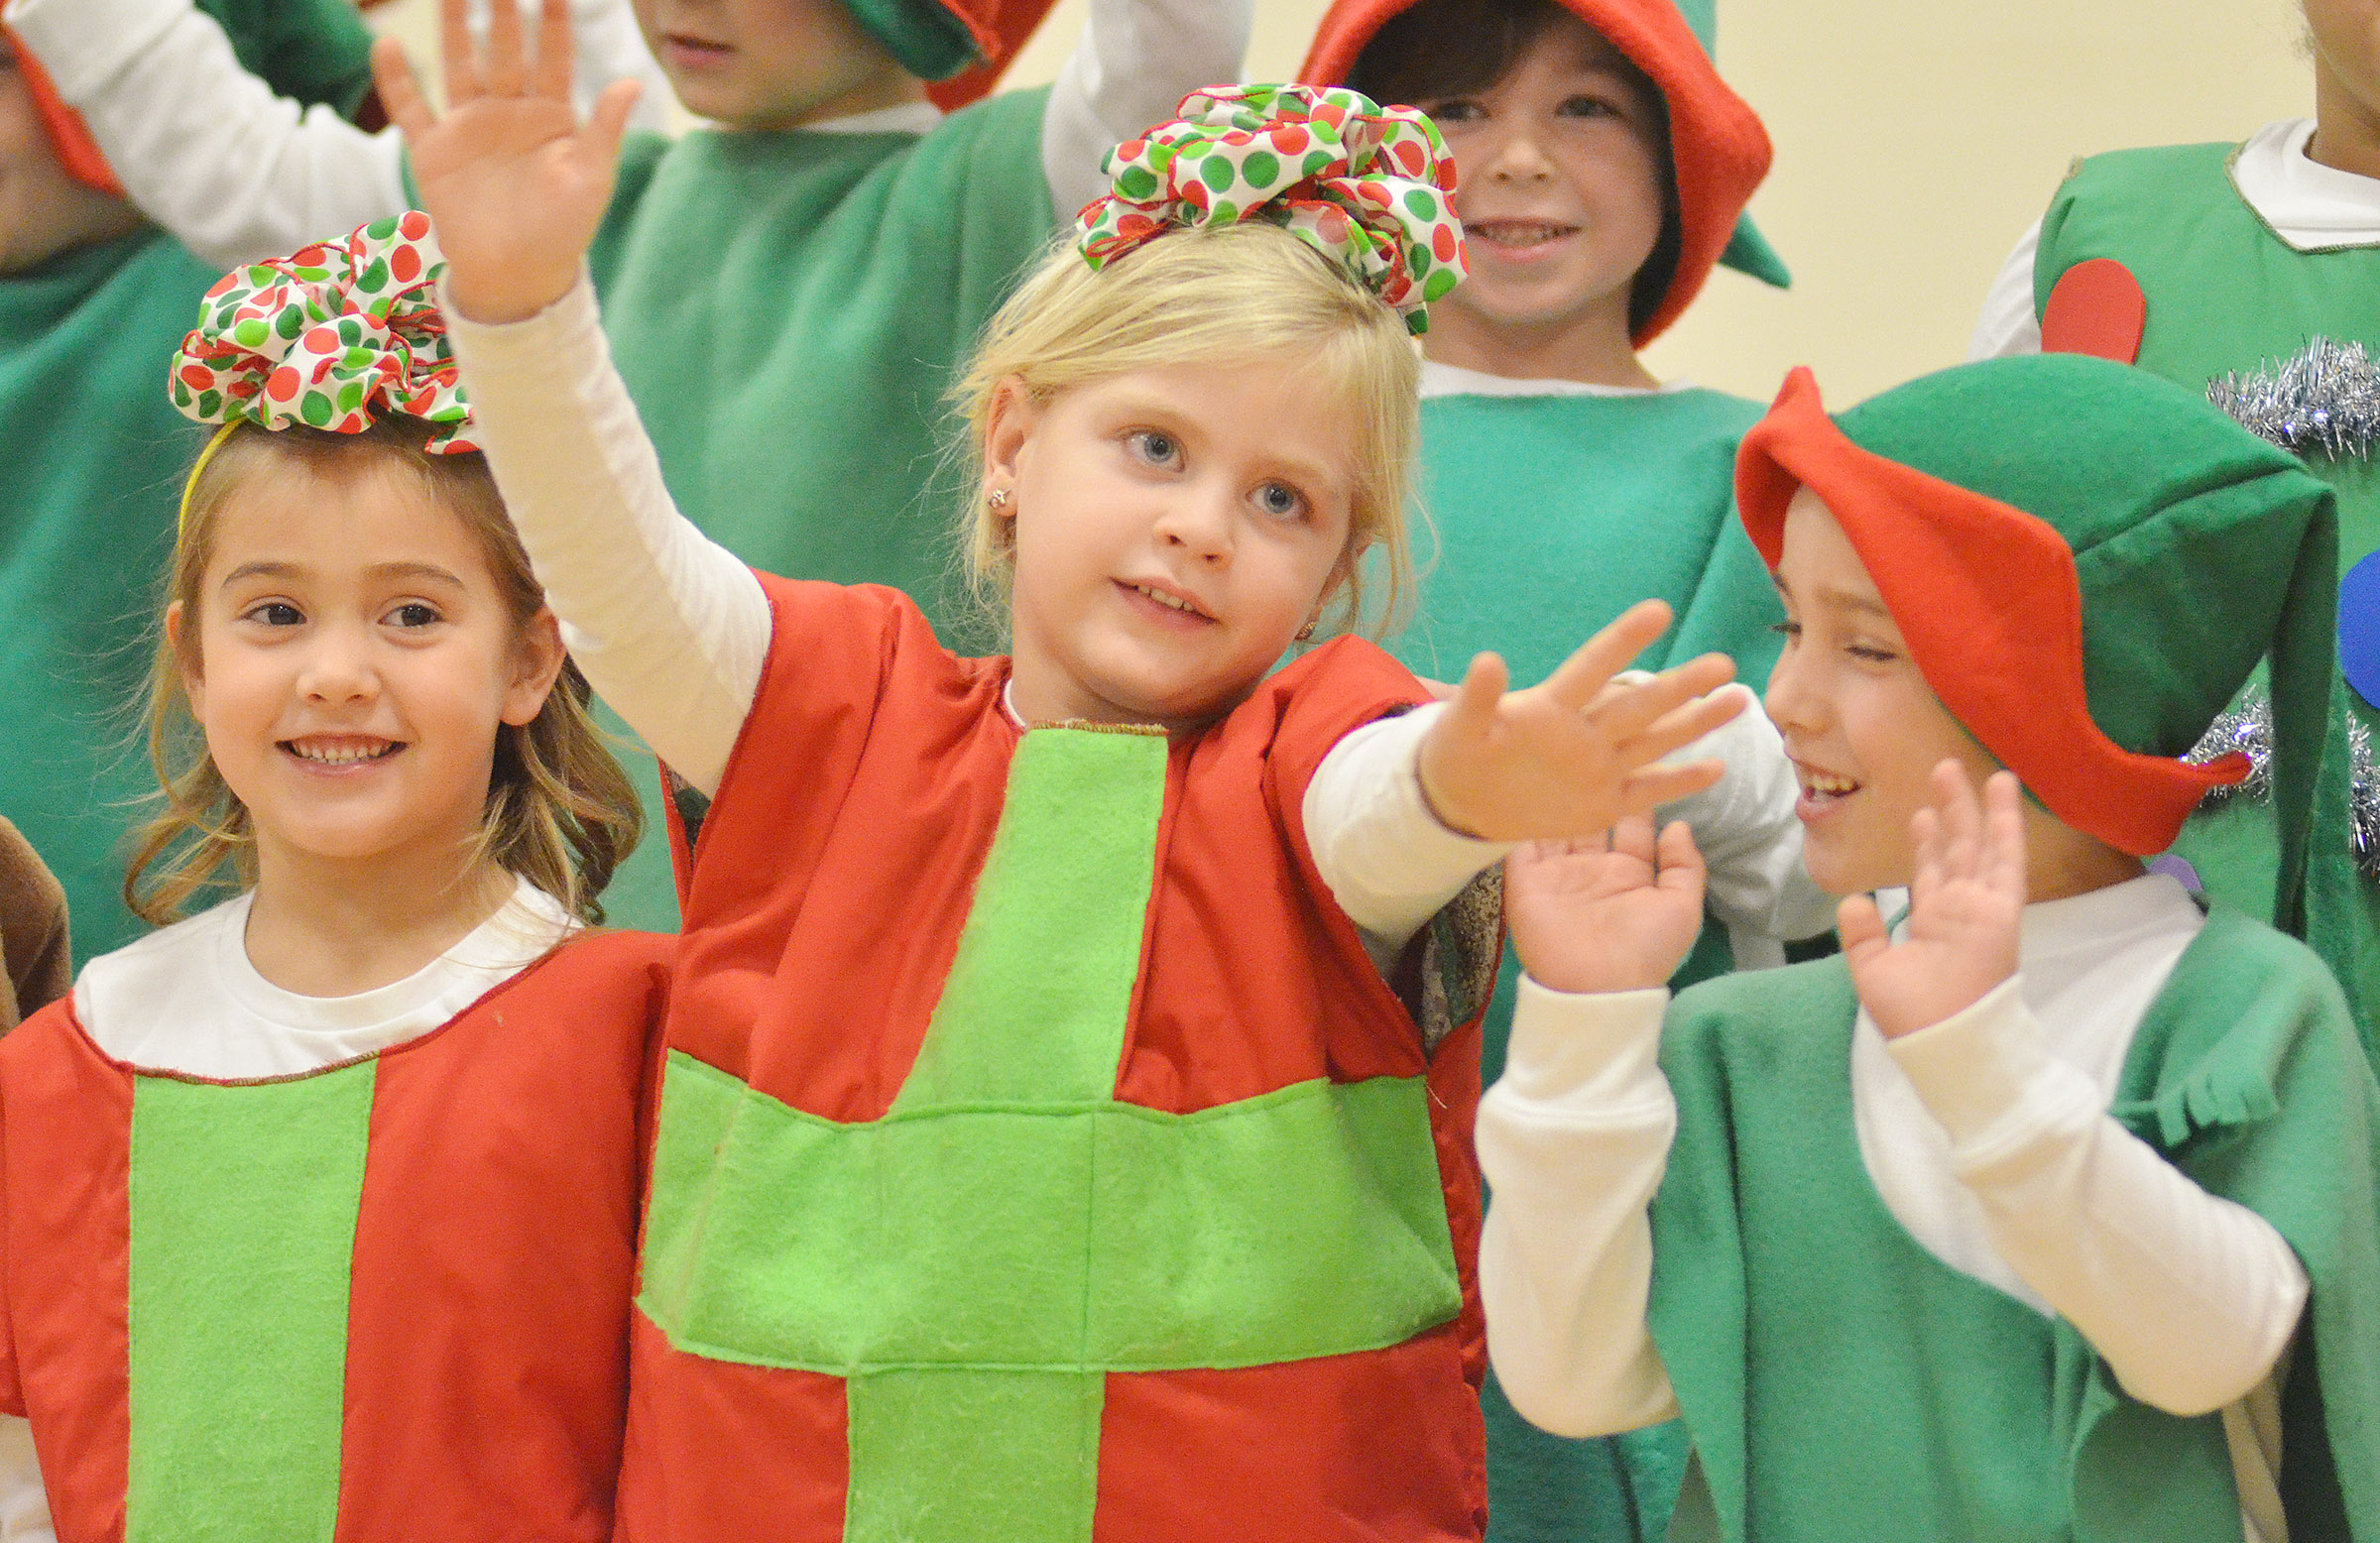 CES kindergarteners, from left, Blakely Gray, Remi Petett and Dane Gray sing and dance.